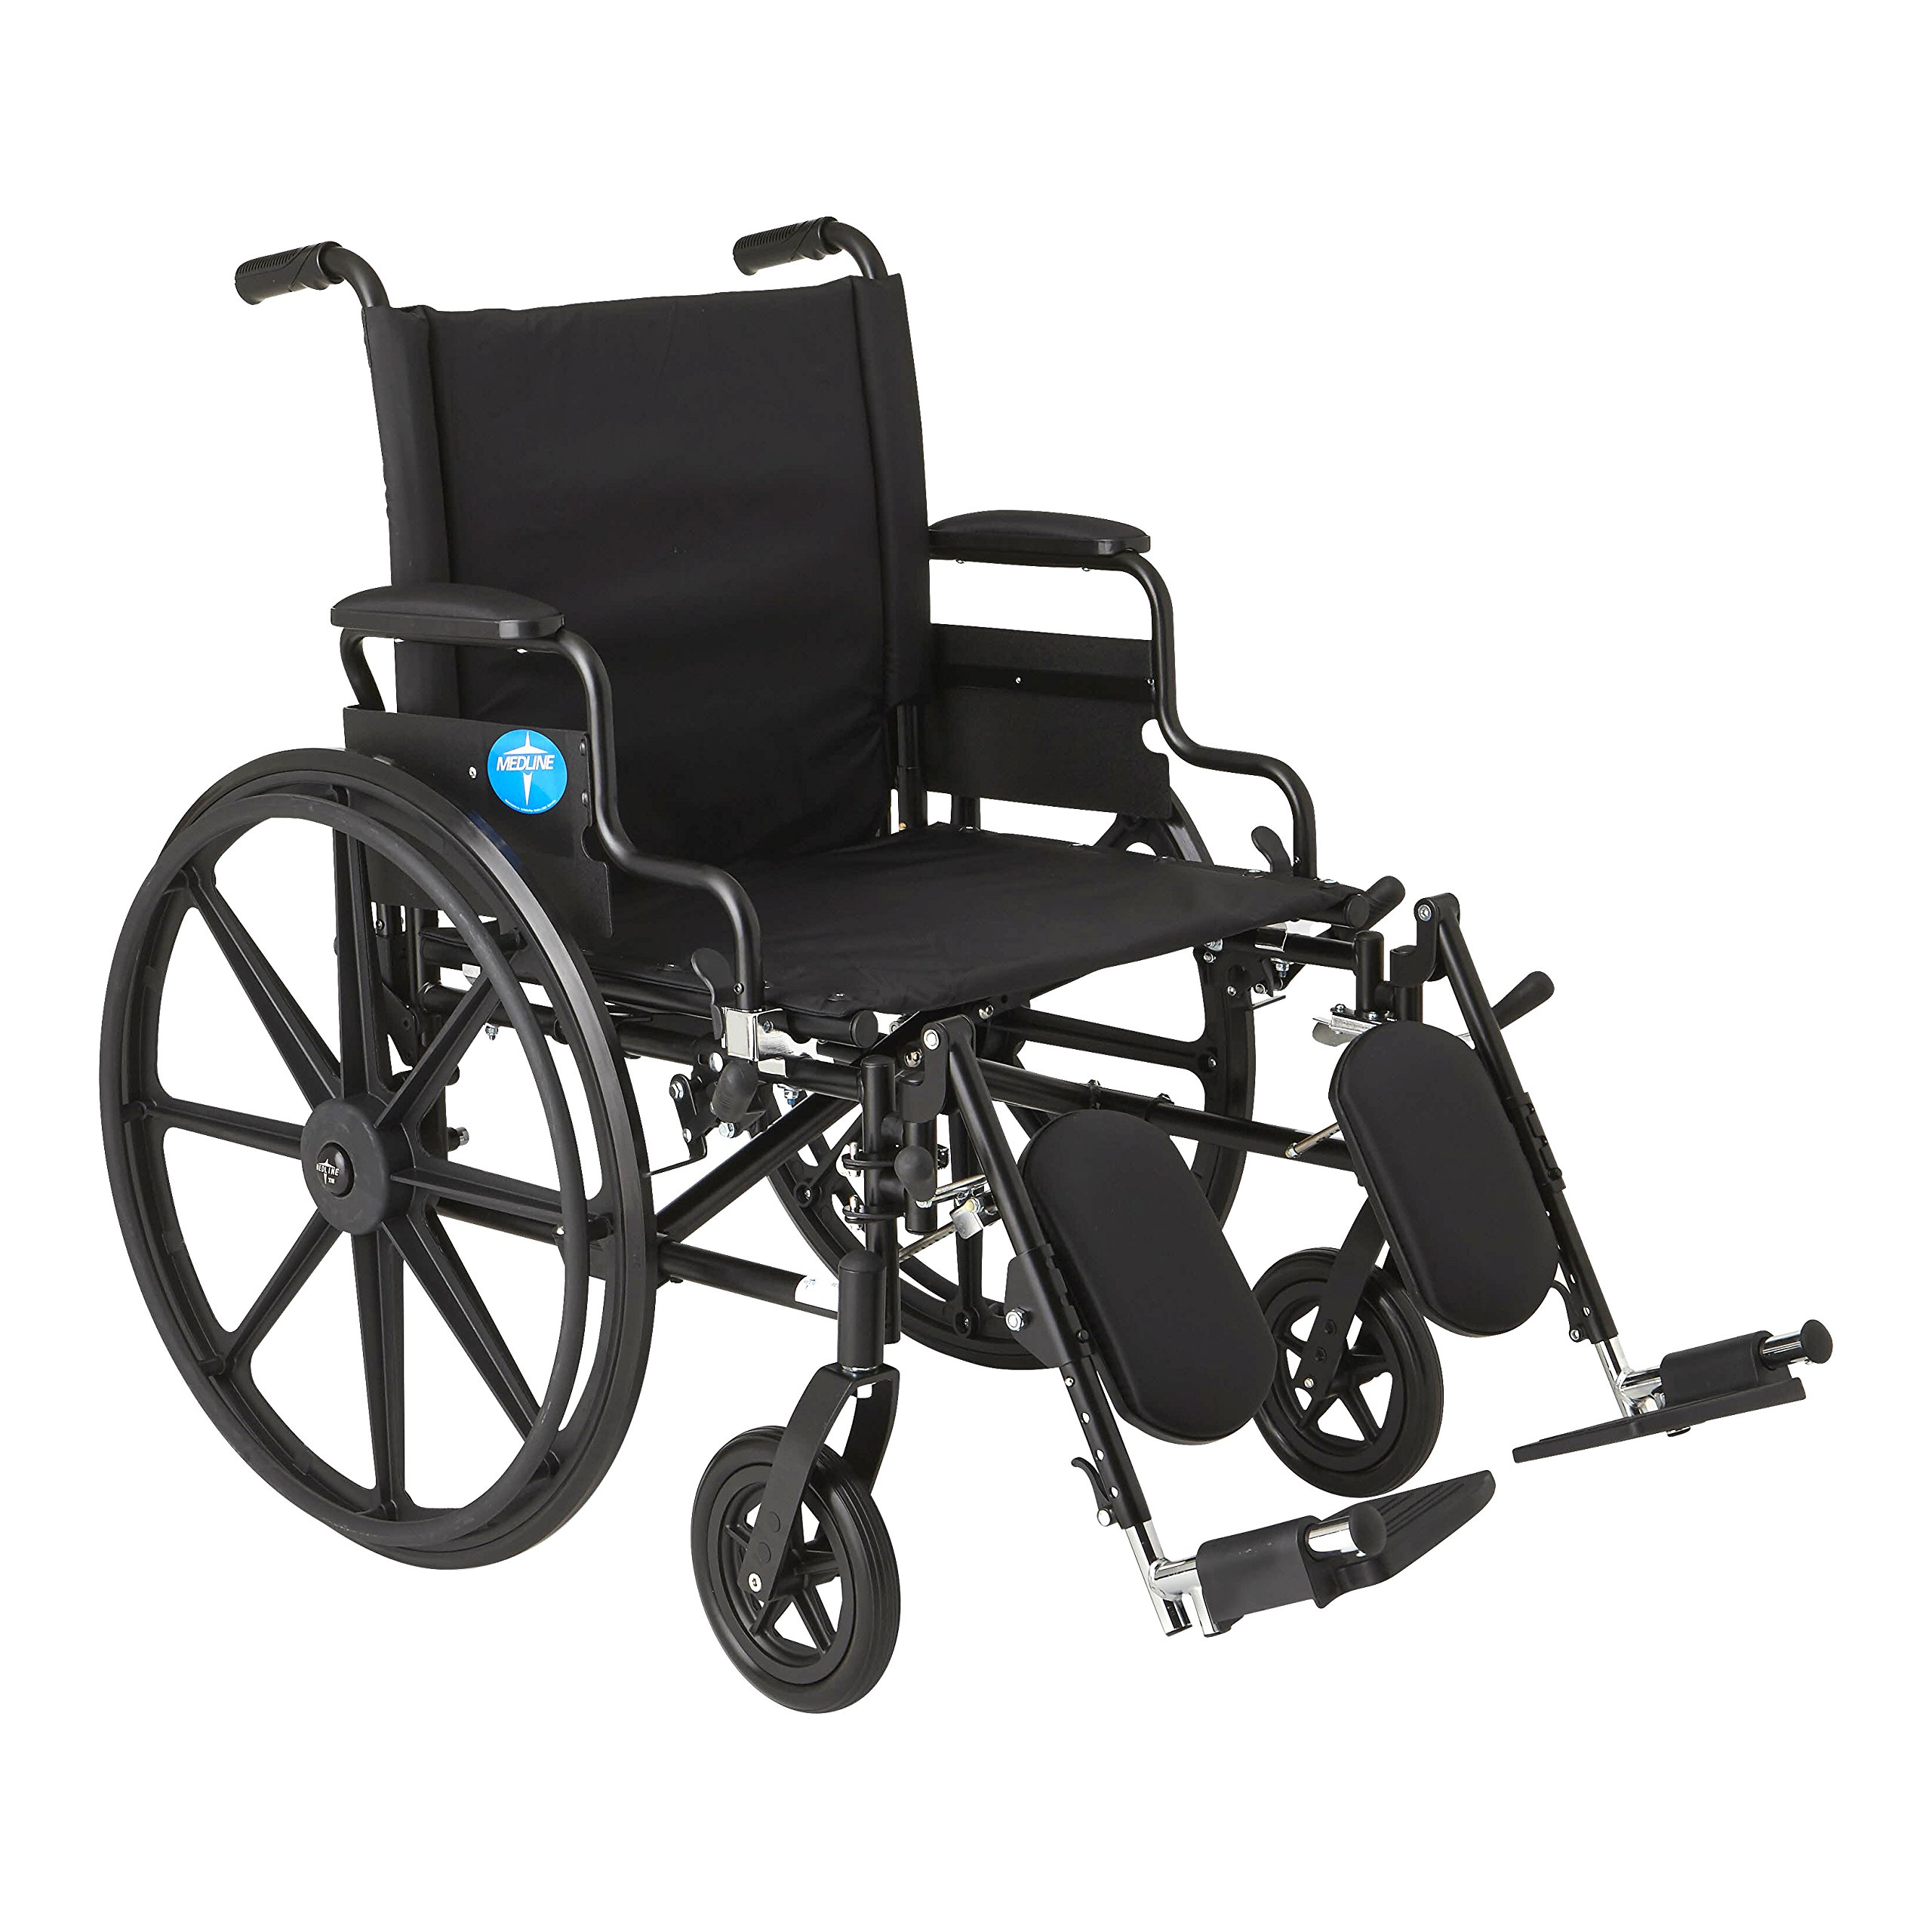 Medline Premium Ultra-Lightweight Wheelchair with Flip-Back Desk Arms and Elevating Leg Rests for Extra Comfort, Black, 22'' x 18'' Seat by Medline